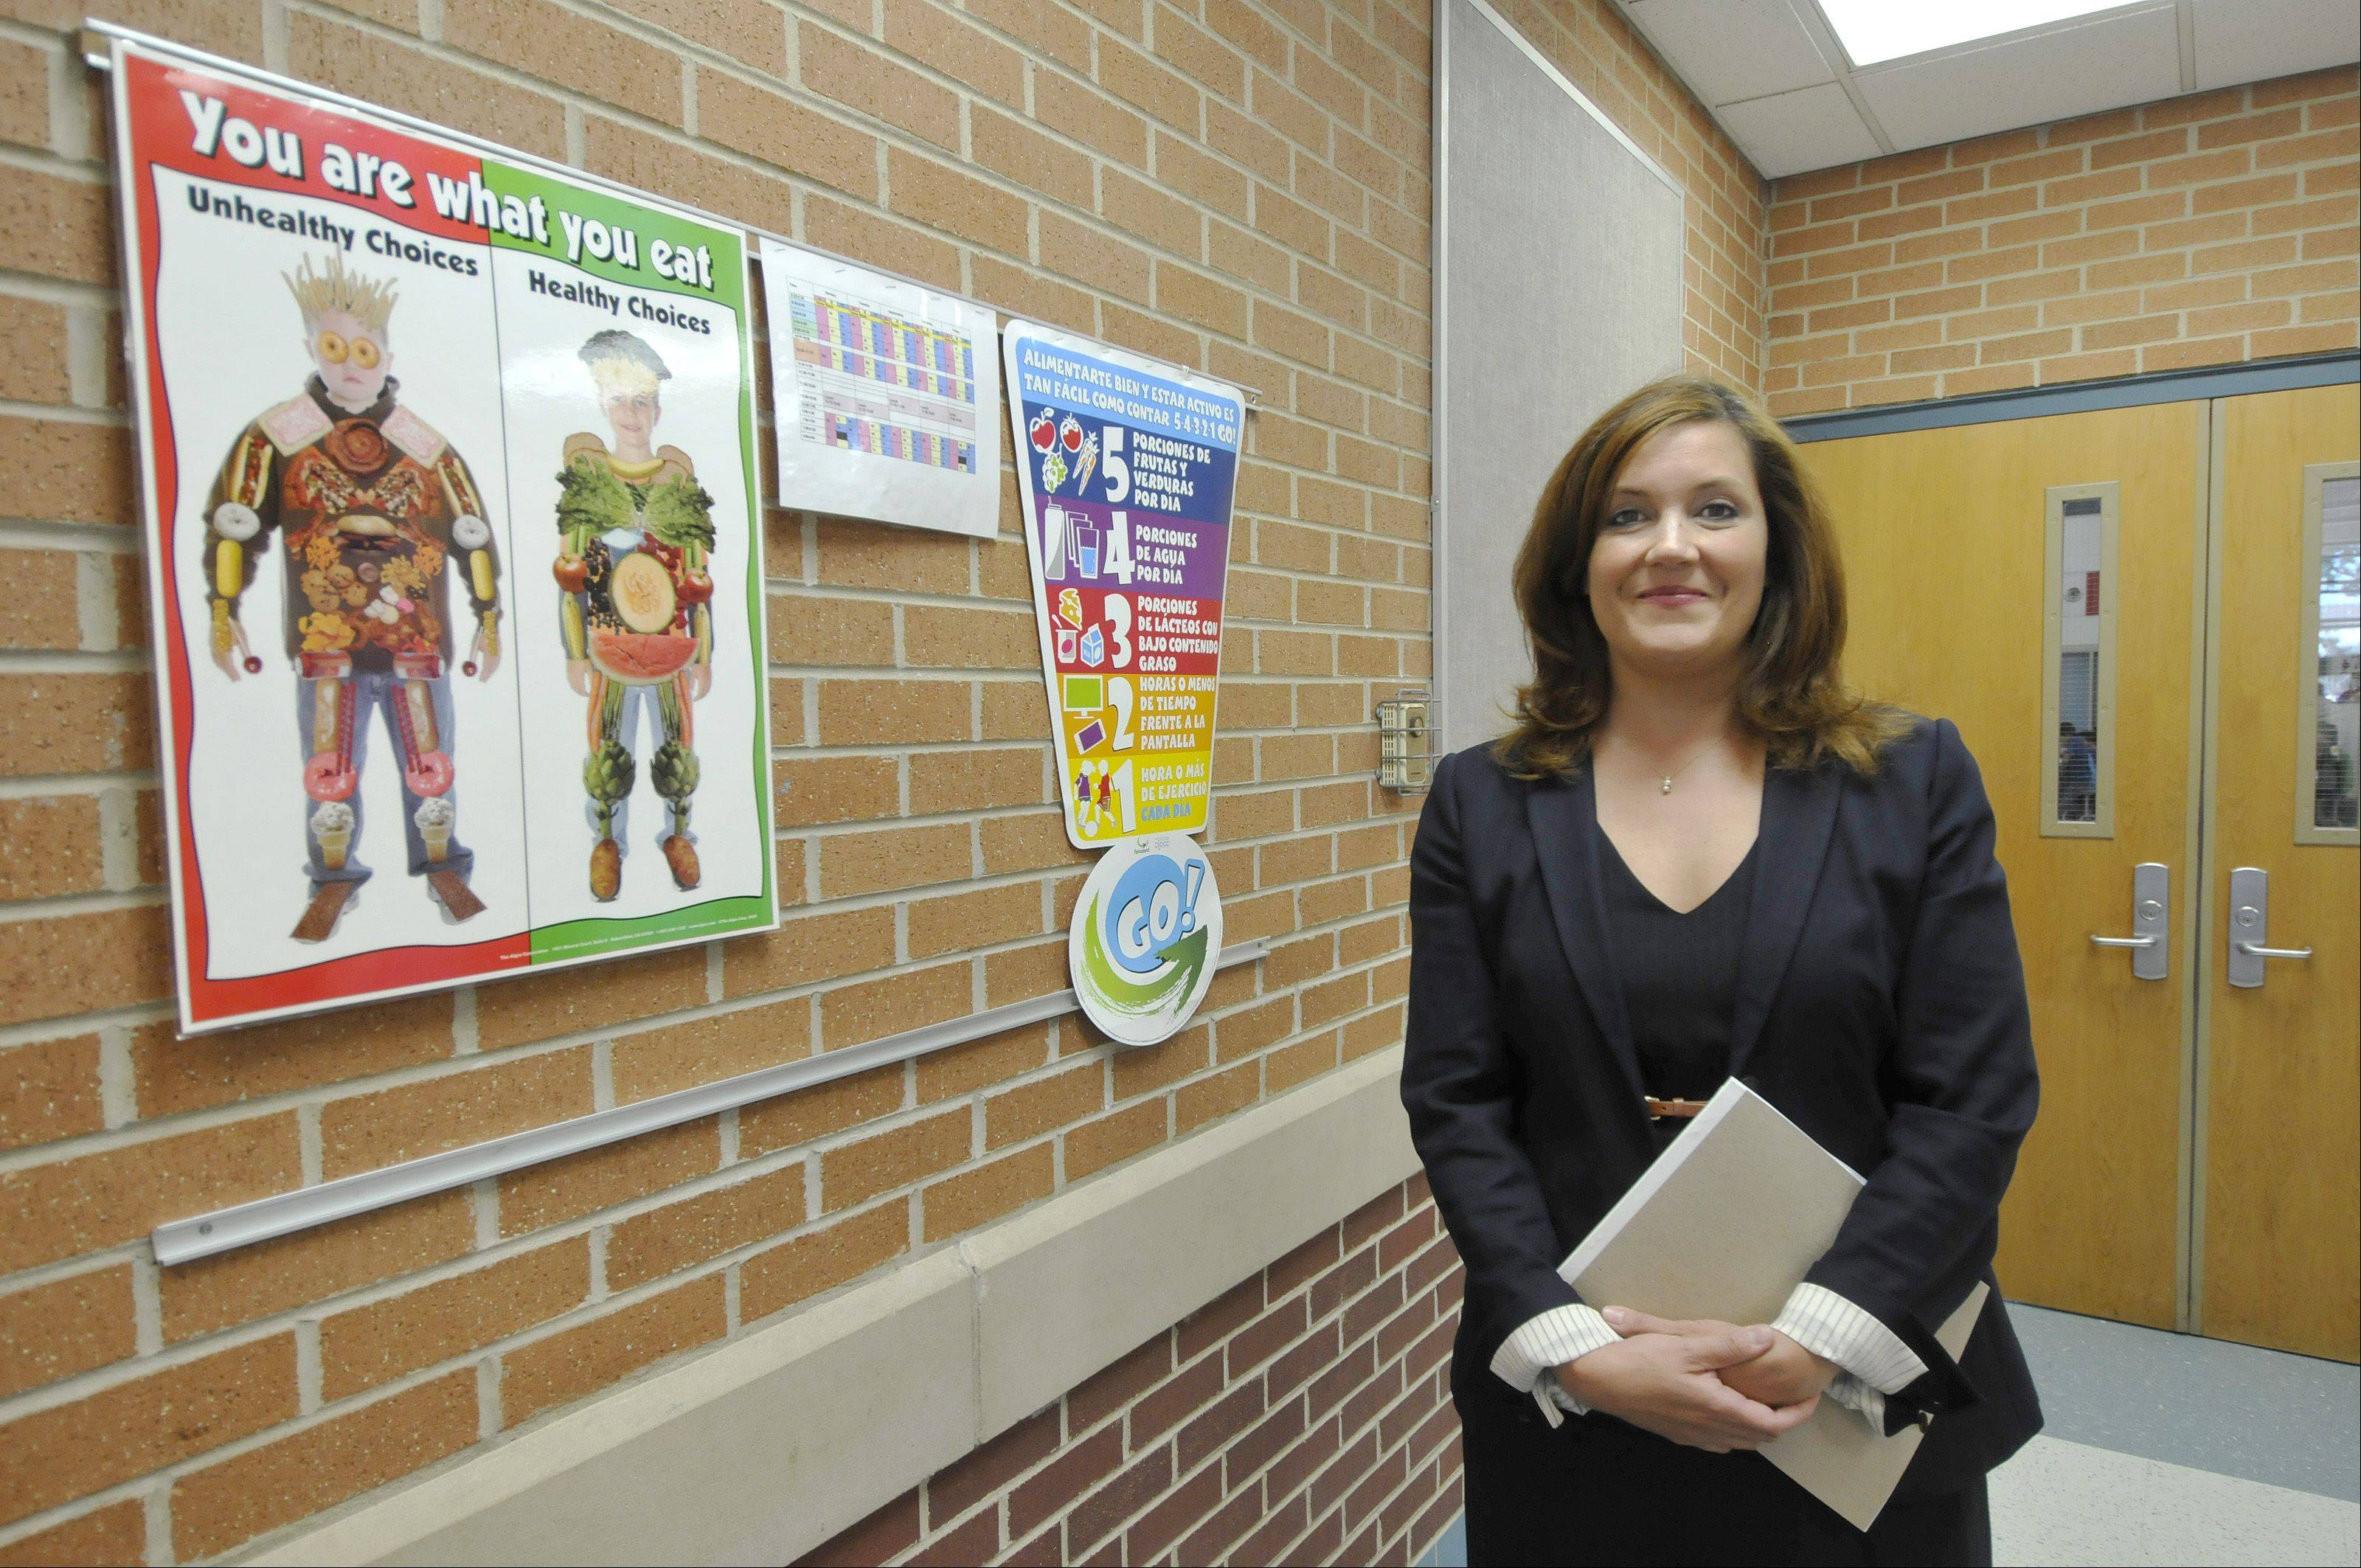 Kristina Davis, West Chicago Elementary District 33�s assistant superintendent for learning, talks about what steps the district has taken to help low-income students. District 33 saw the largest growth in its low-income population of any district in the Daily Herald circulation area.